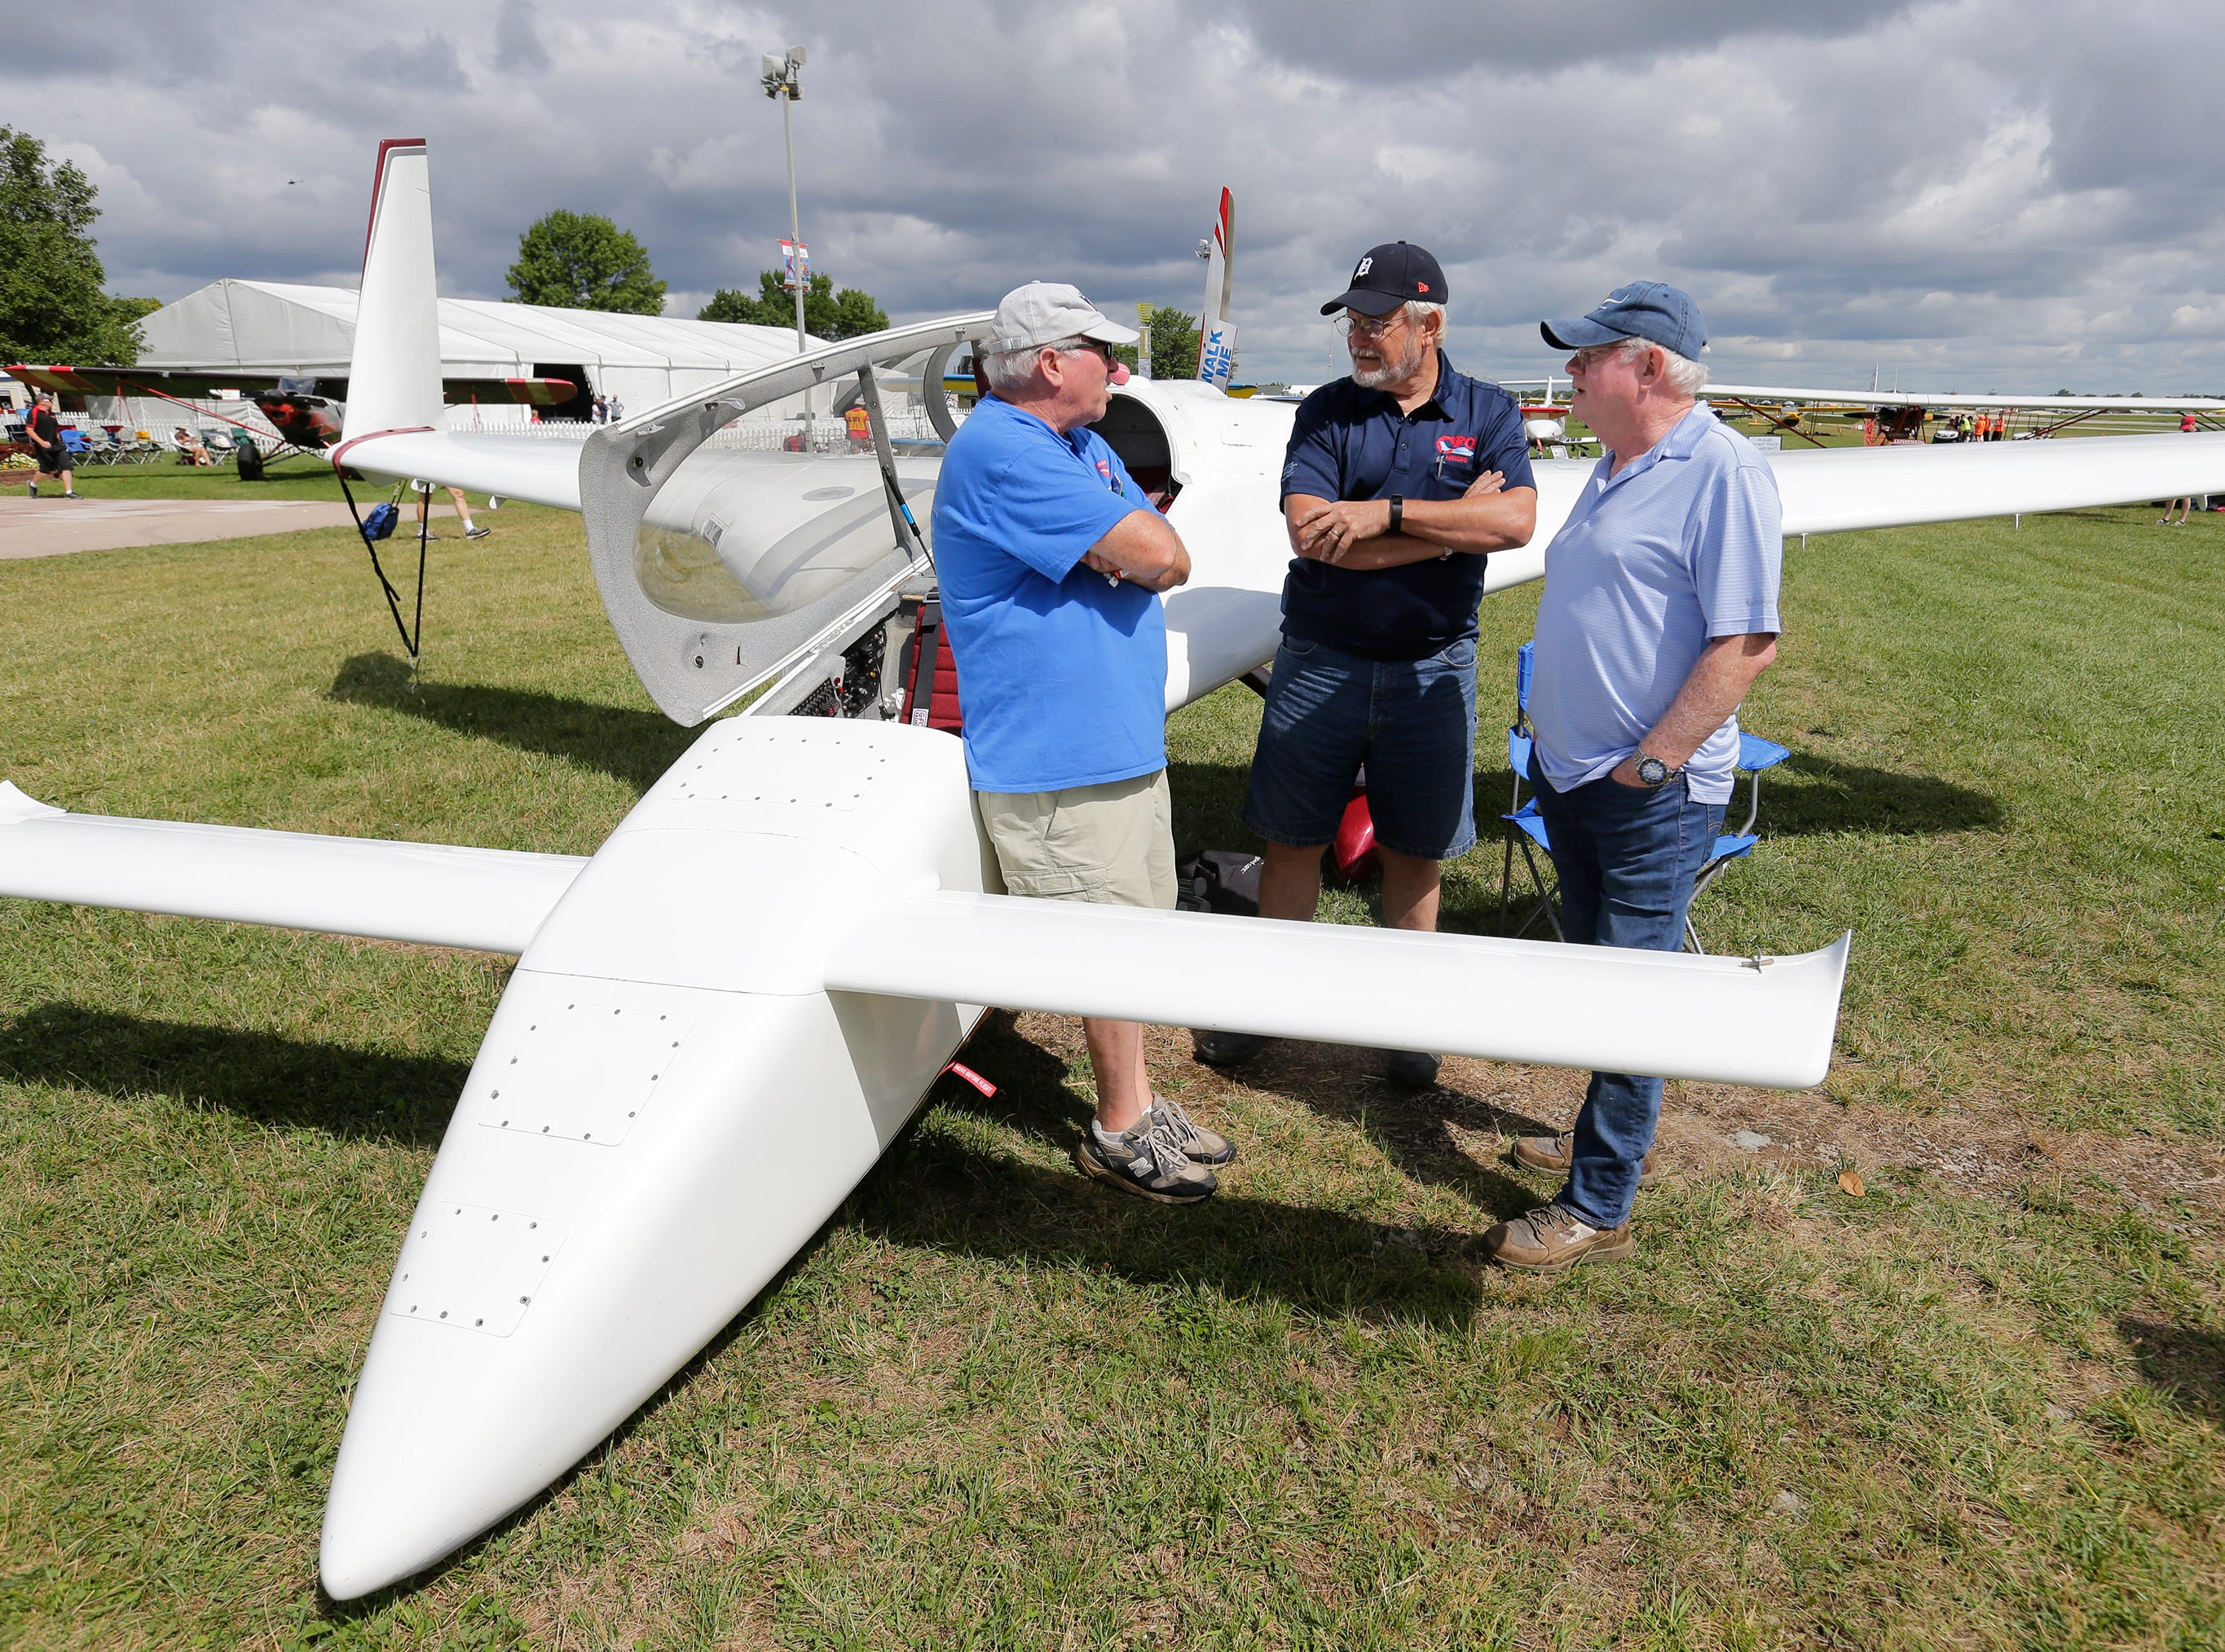 Bob Stevens of Indianapolis, Ind., leans on his 1989 Long Ez as he talks with with Steve Kay of Kokomo, Ind., and Jerry Mundell of Indianapolis, Ind.,Thursday, July 26, 2018, in Oshkosh, Wis.  The 66th annual Experimental Aircraft Association Fly-In Convention, AirVenture 2018 draws over 500,000 people and over 10,000 planes from more than 70 nations annually to the area.  The convention runs through July 29.Joe Sienkiewicz/USA Today NETWORK-Wisconsin